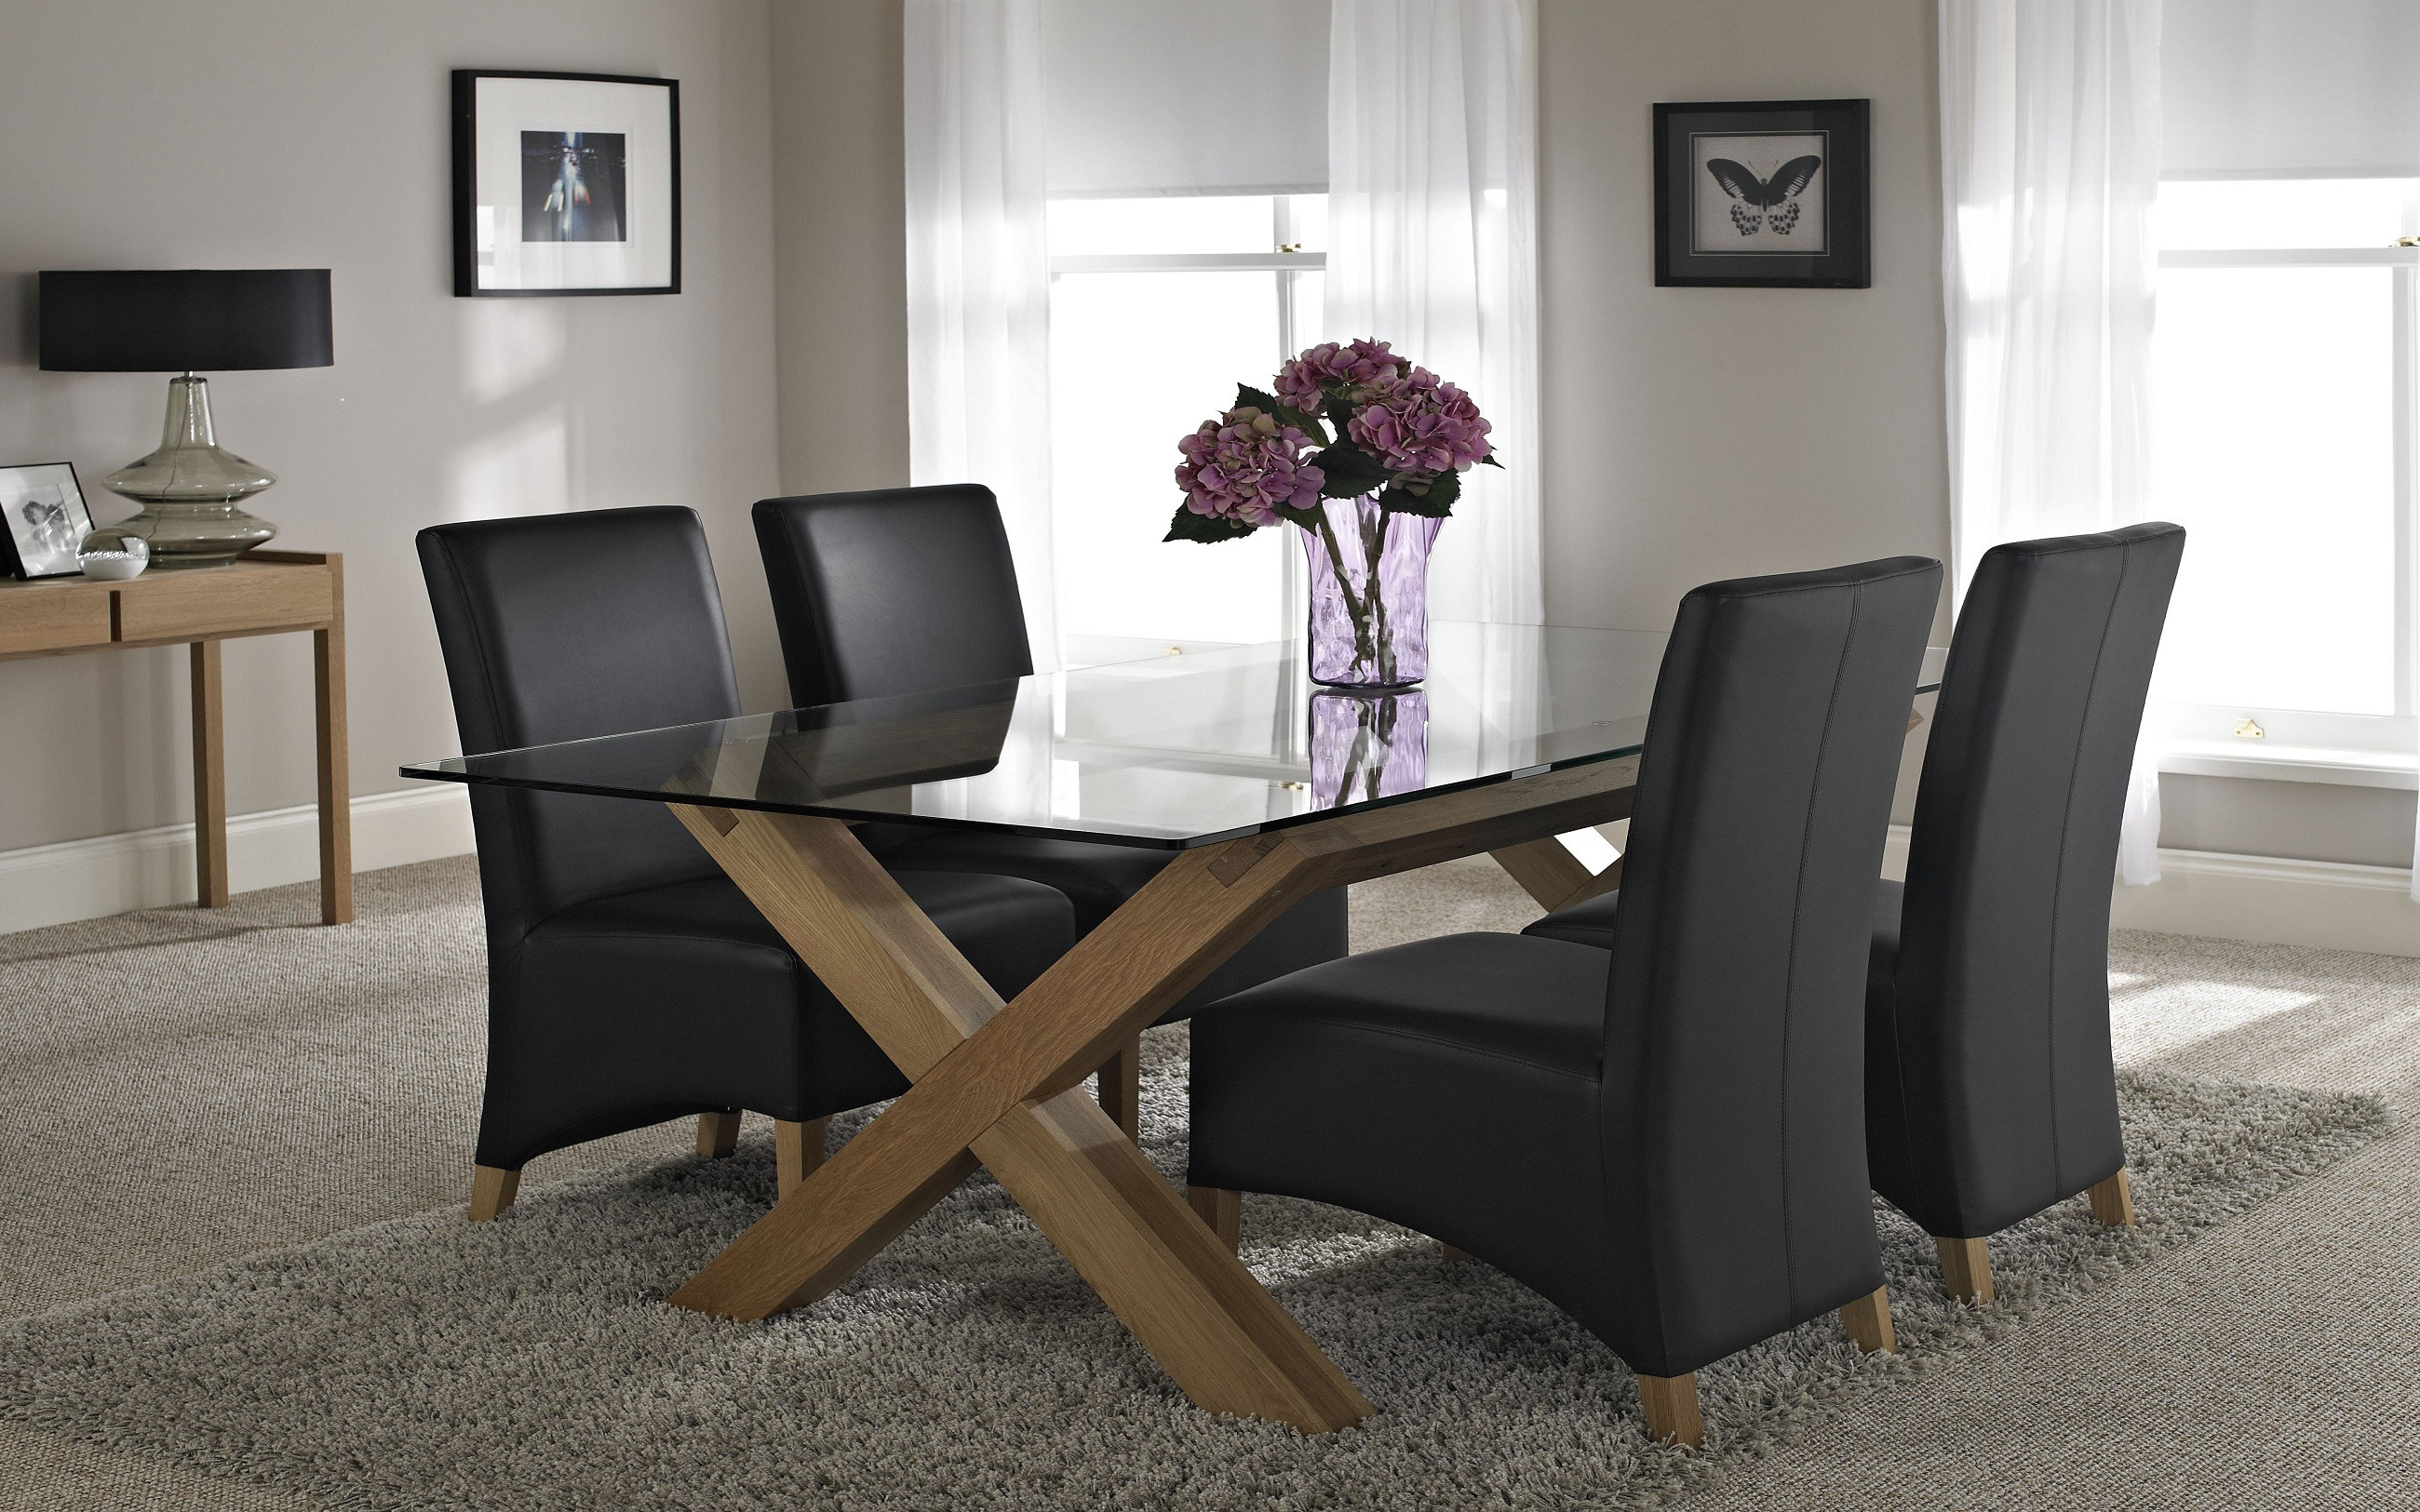 Best ideas about Glass Dining Room Tables . Save or Pin Glass Dining Tables Buying Guide Now.